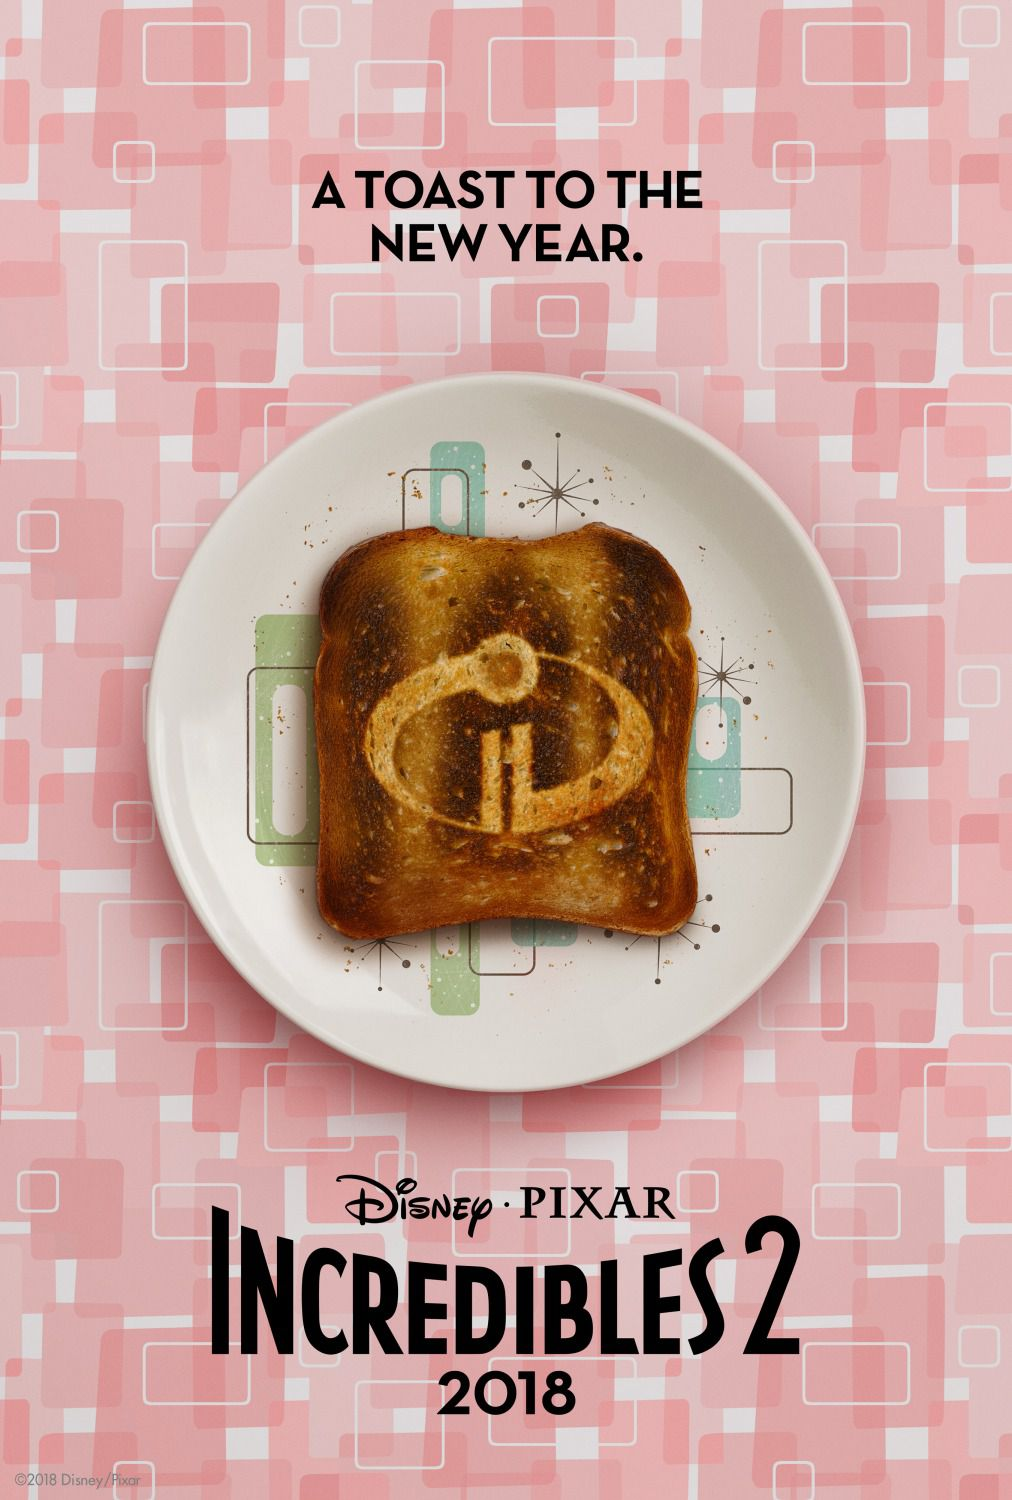 Incredibili 2 - Incredibles 2 - Disney Pixar 2018 - animated film poster - toast